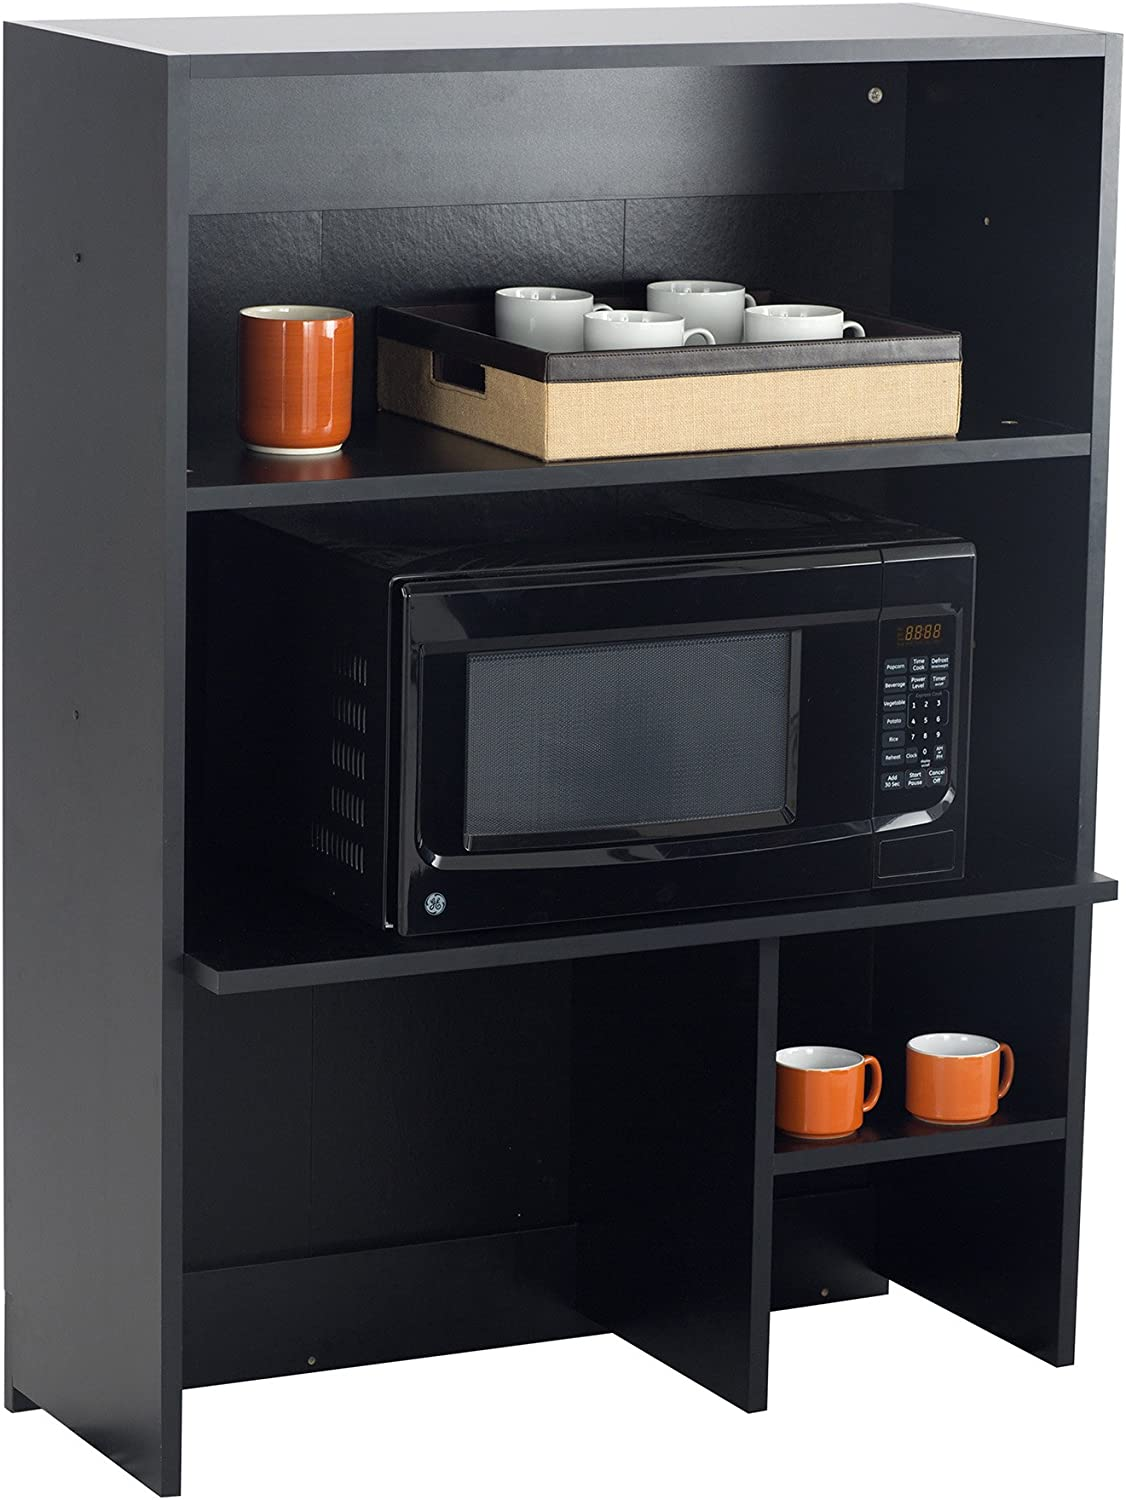 Safco Products Modular Hospitality Breakroom Top Cabinet, Appliance Hutch, Asian Night Base/Black Top